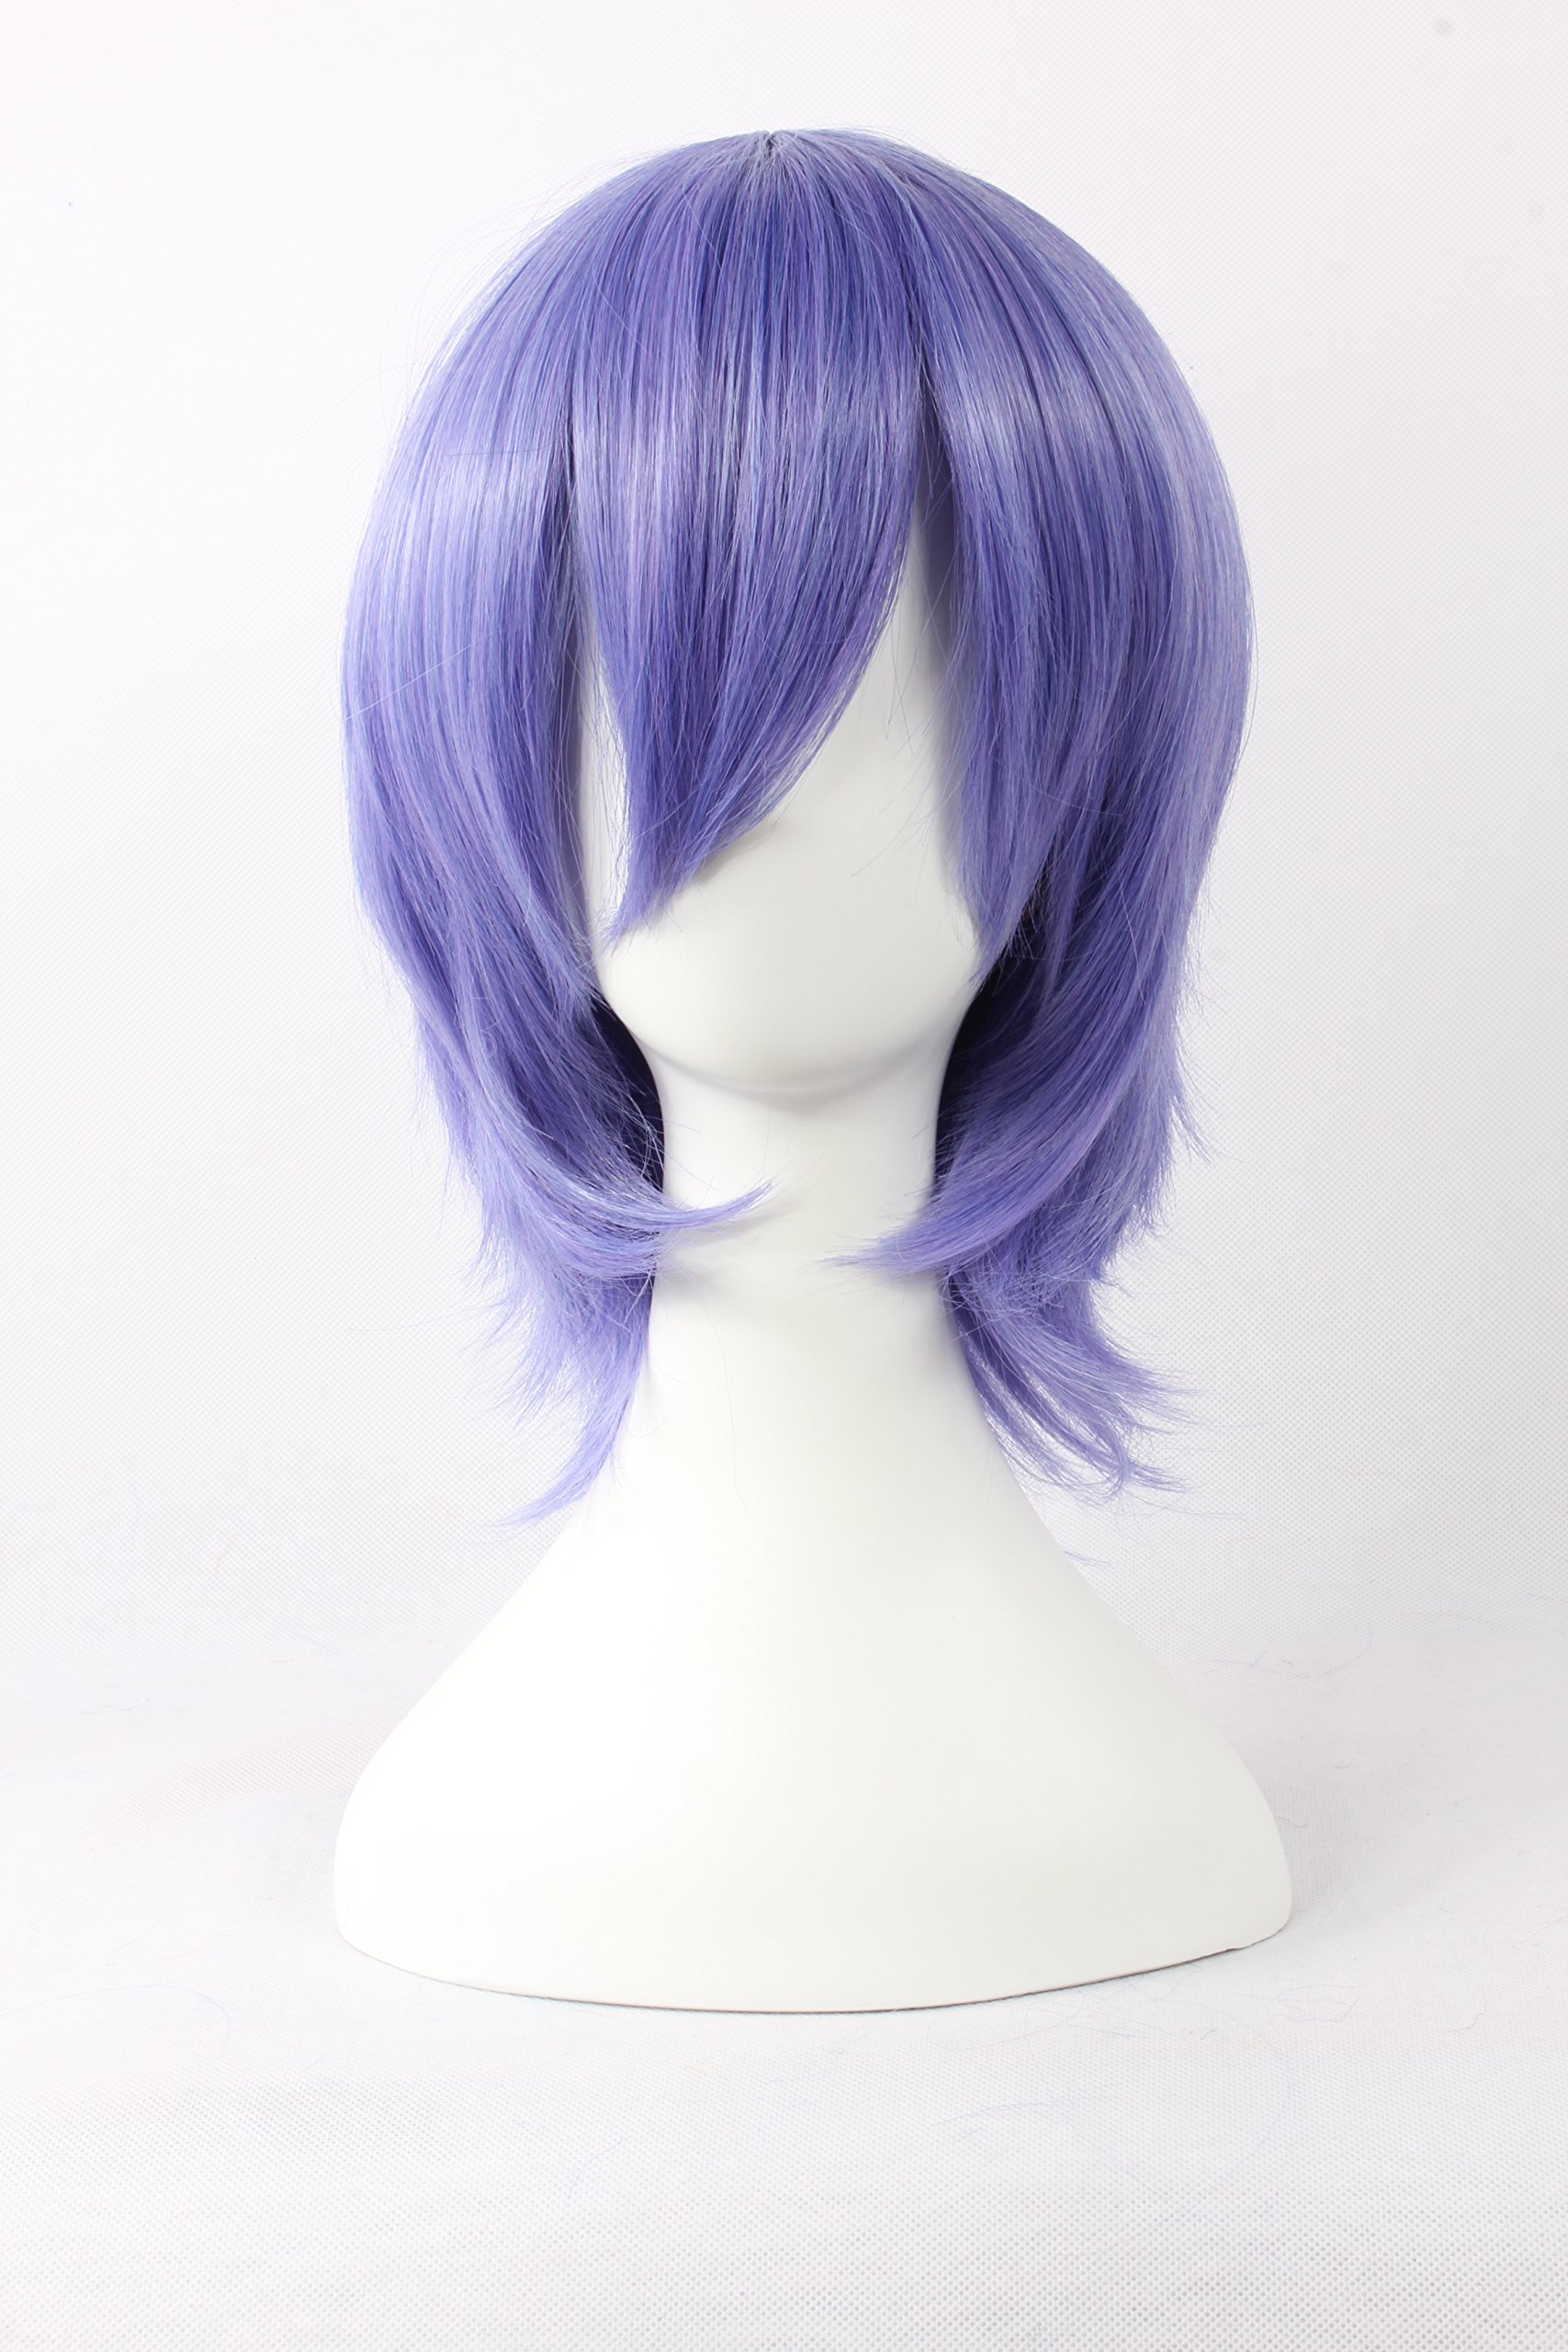 Coolsky Wigs Pandora Hearts,LetterBee,TouhouProject Blue&Purple Hair Cosplay Wig